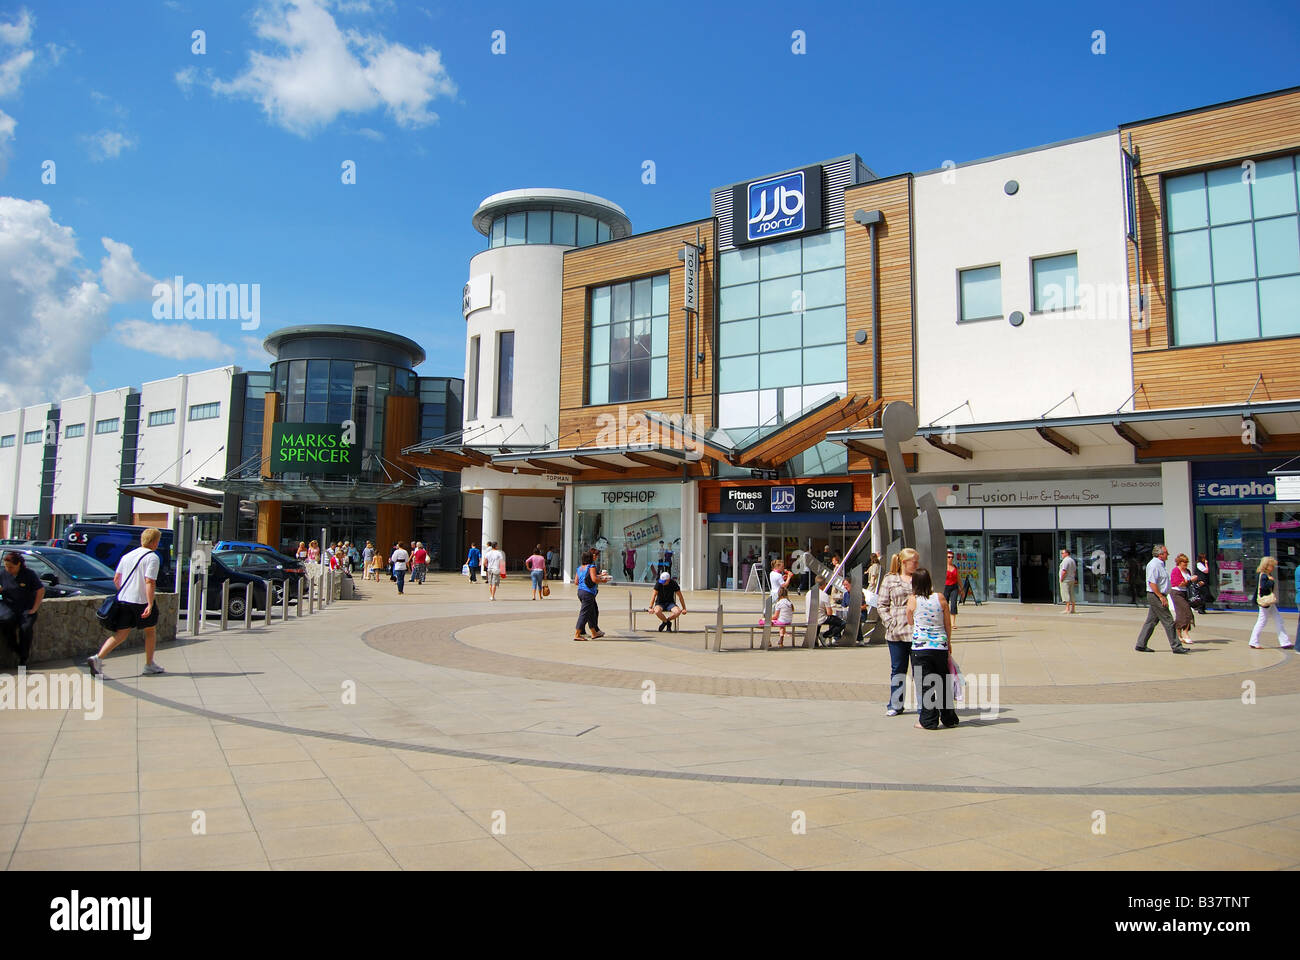 Westwood Cross Shopping Centre, Margate Rd, Broadstairs, Kent, England, United Kingdom - Stock Image